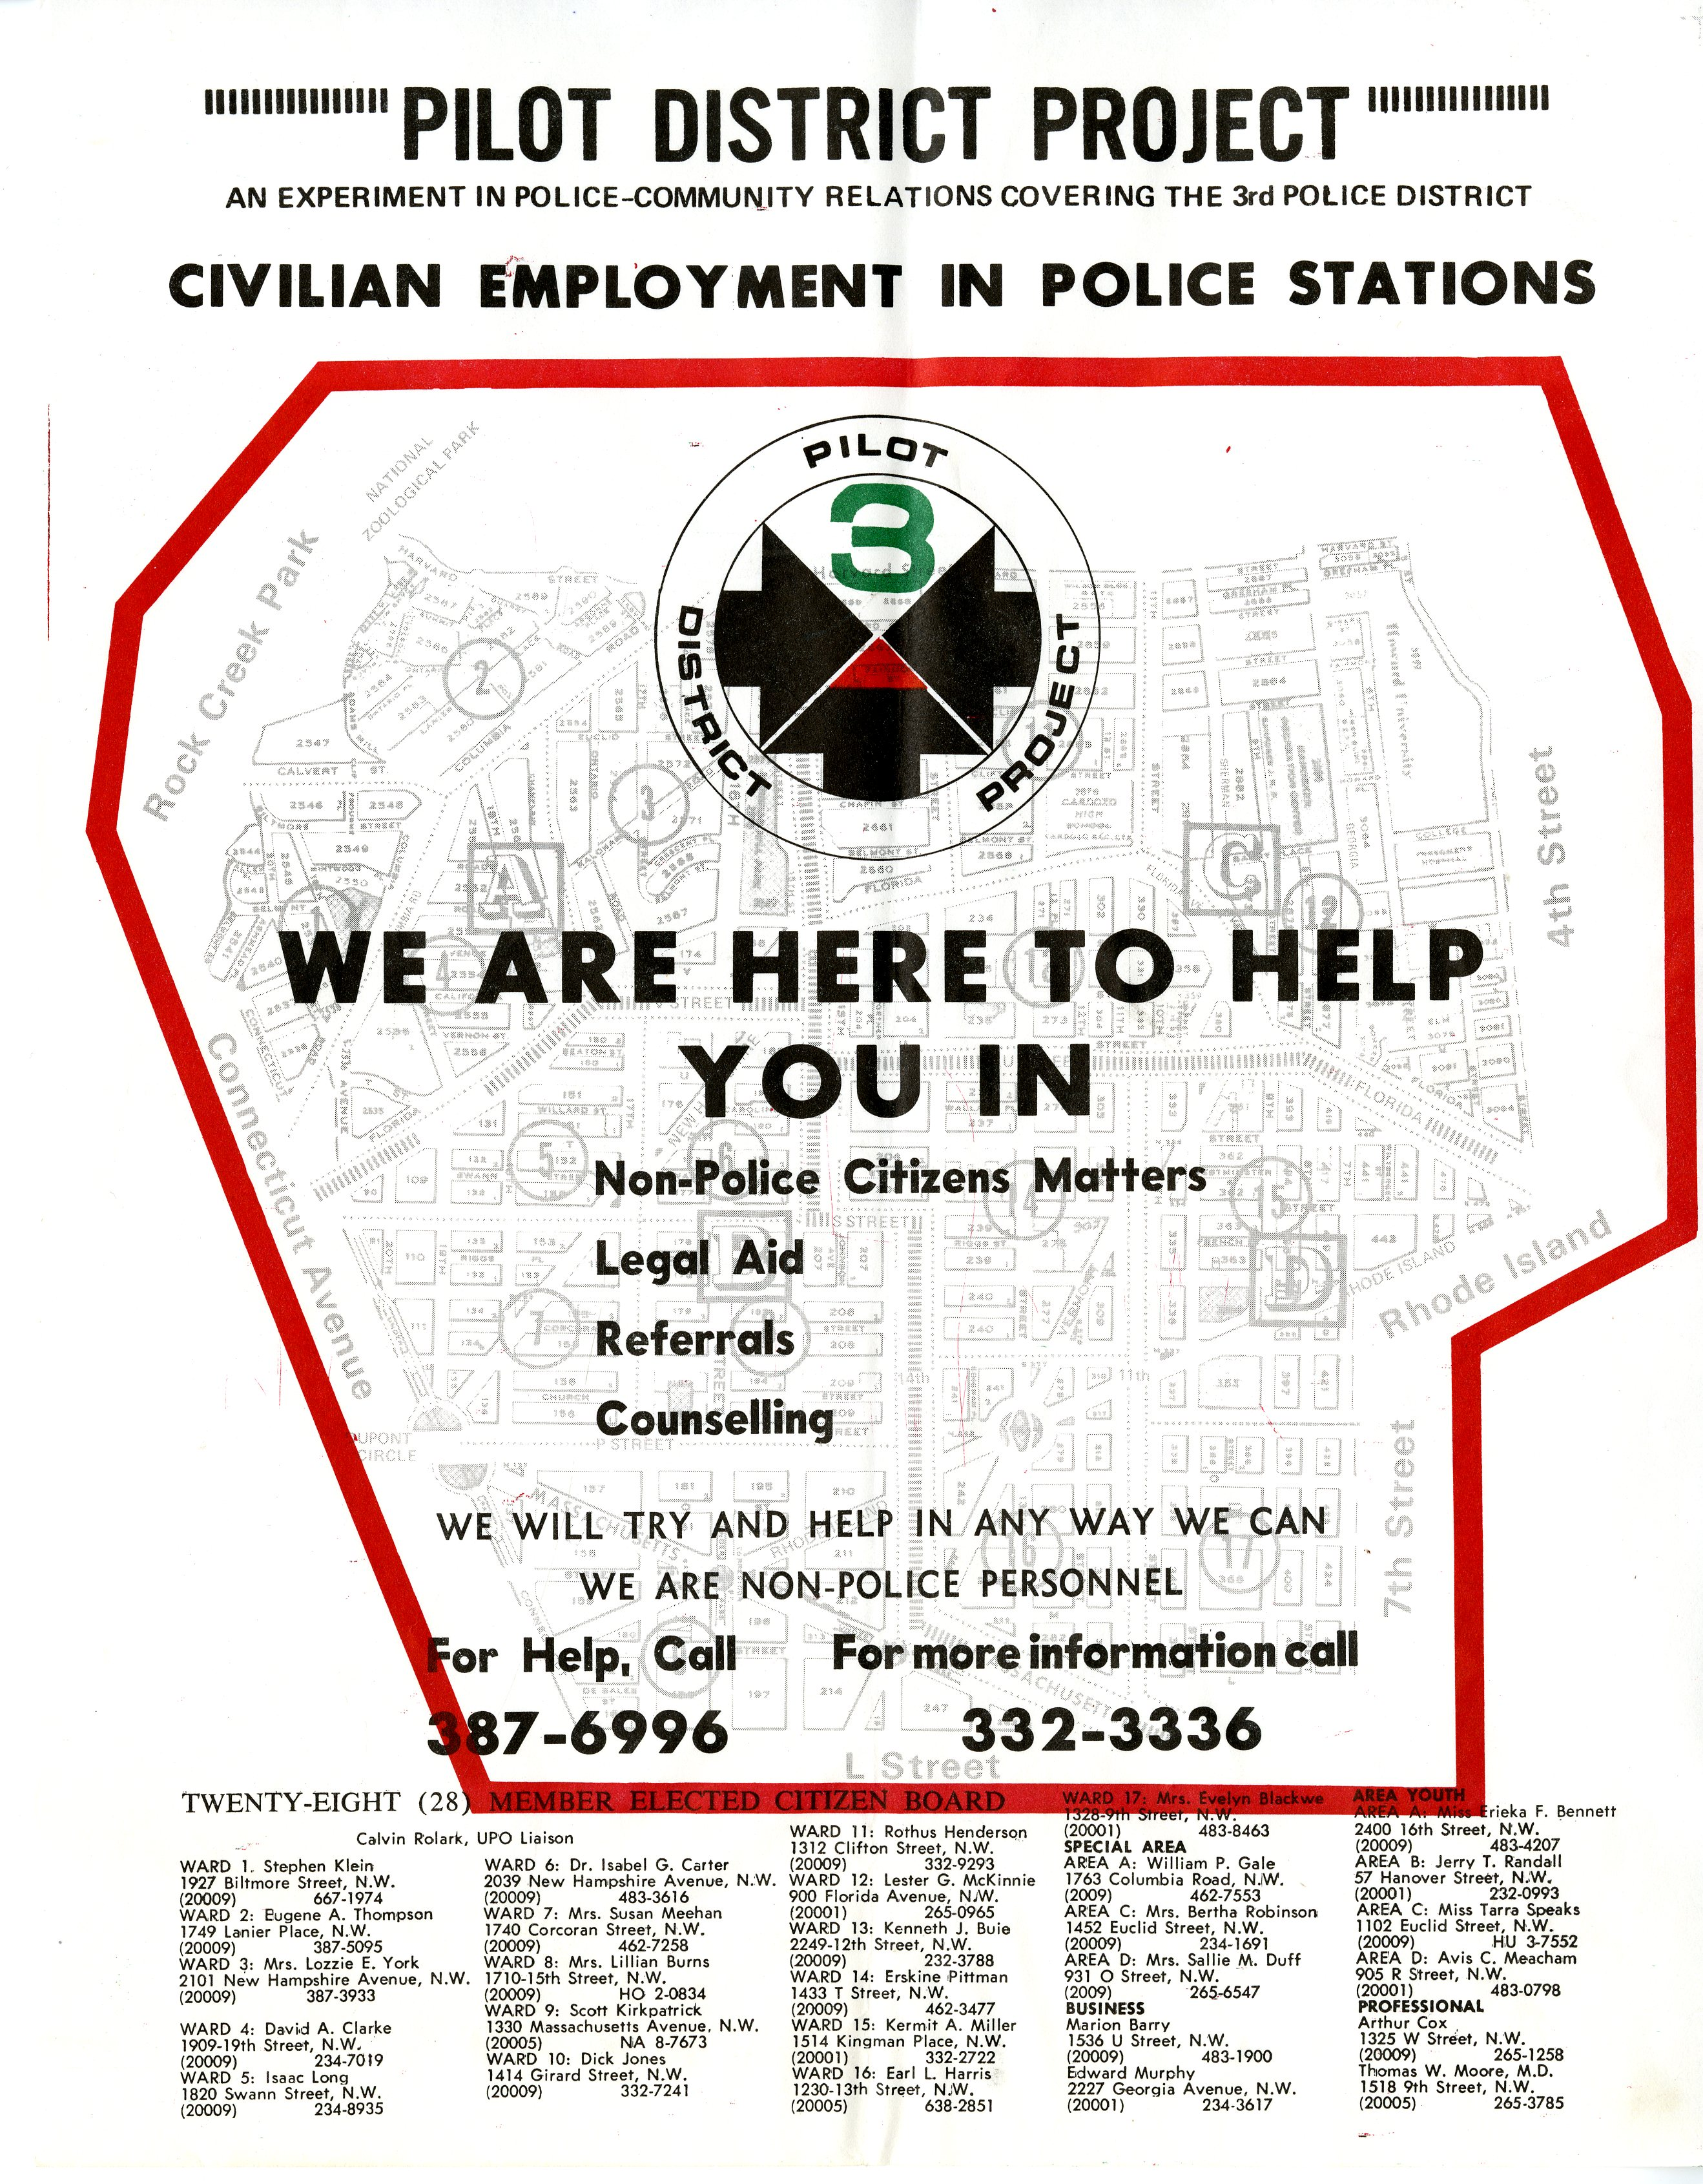 PDP Civilian Employment in Police Stations flyer, c.1971.